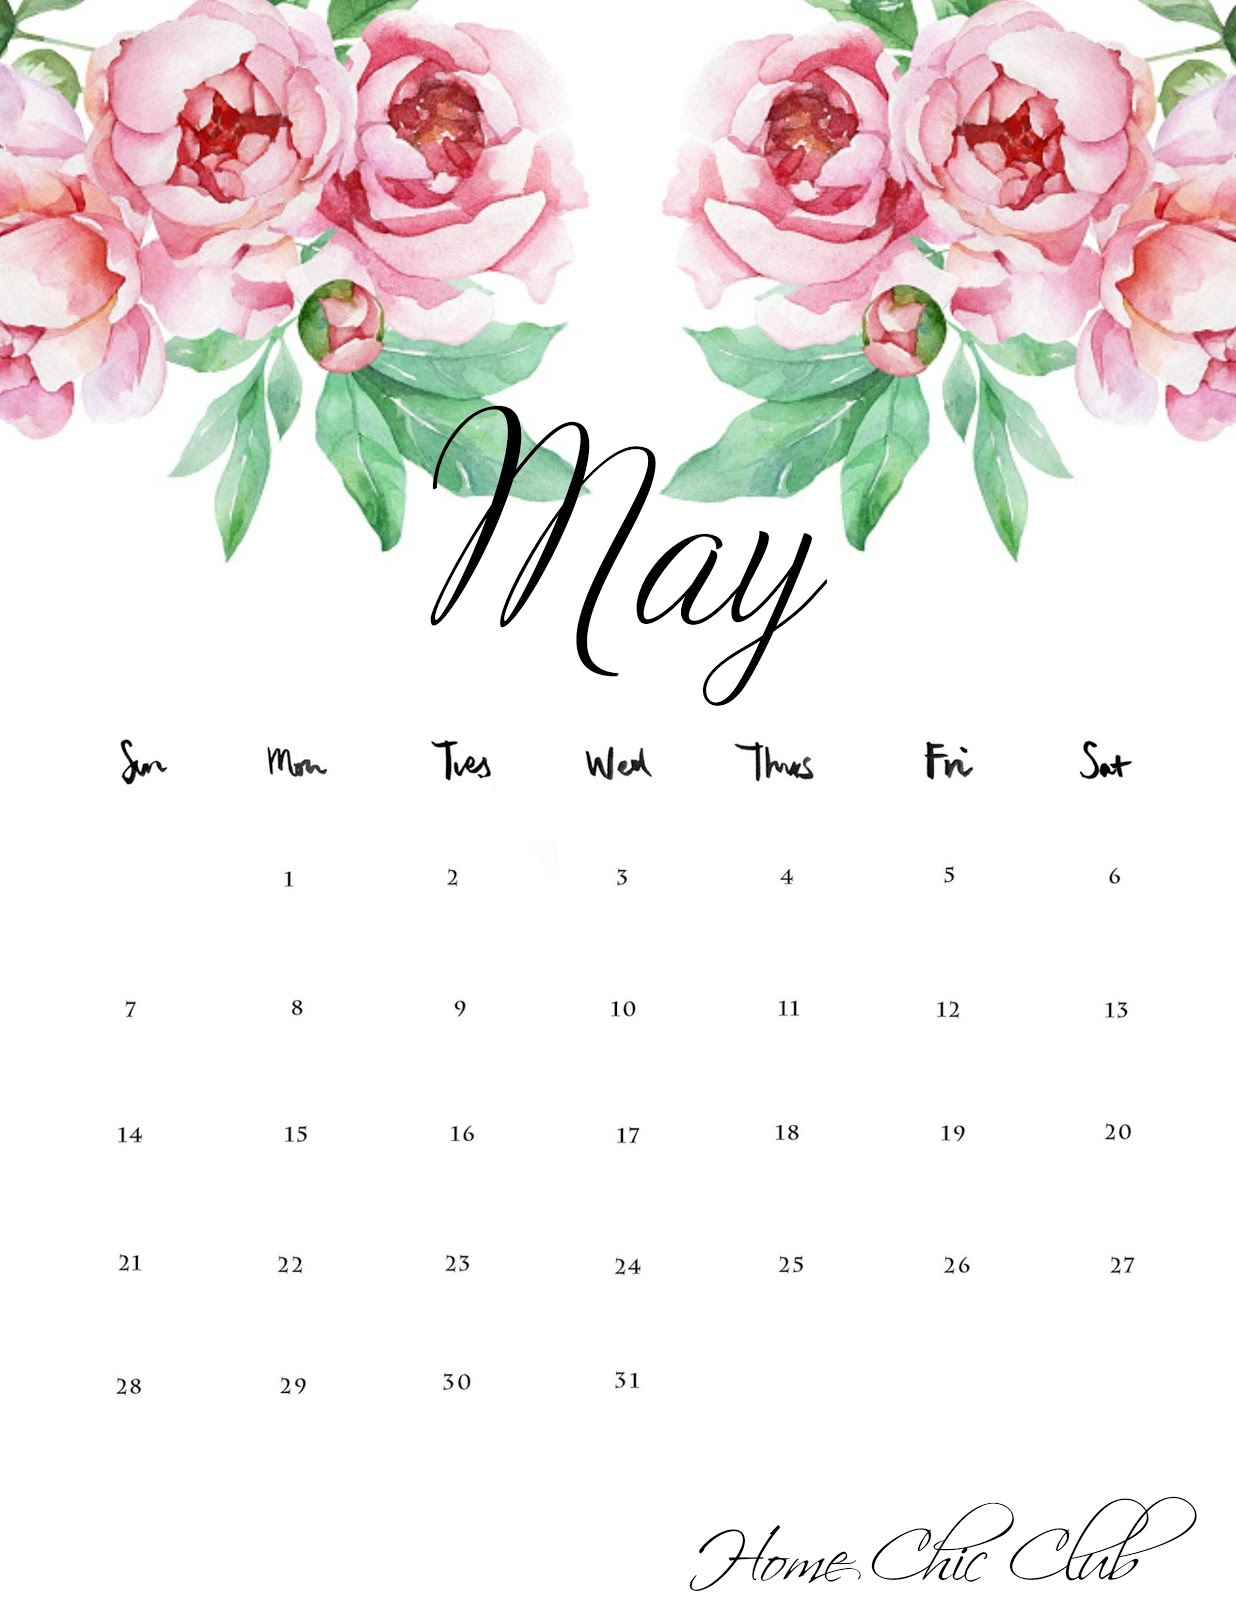 Marvelous A Free Printable May 2017 Calendar April Recap Home Chic Download Free Architecture Designs Scobabritishbridgeorg